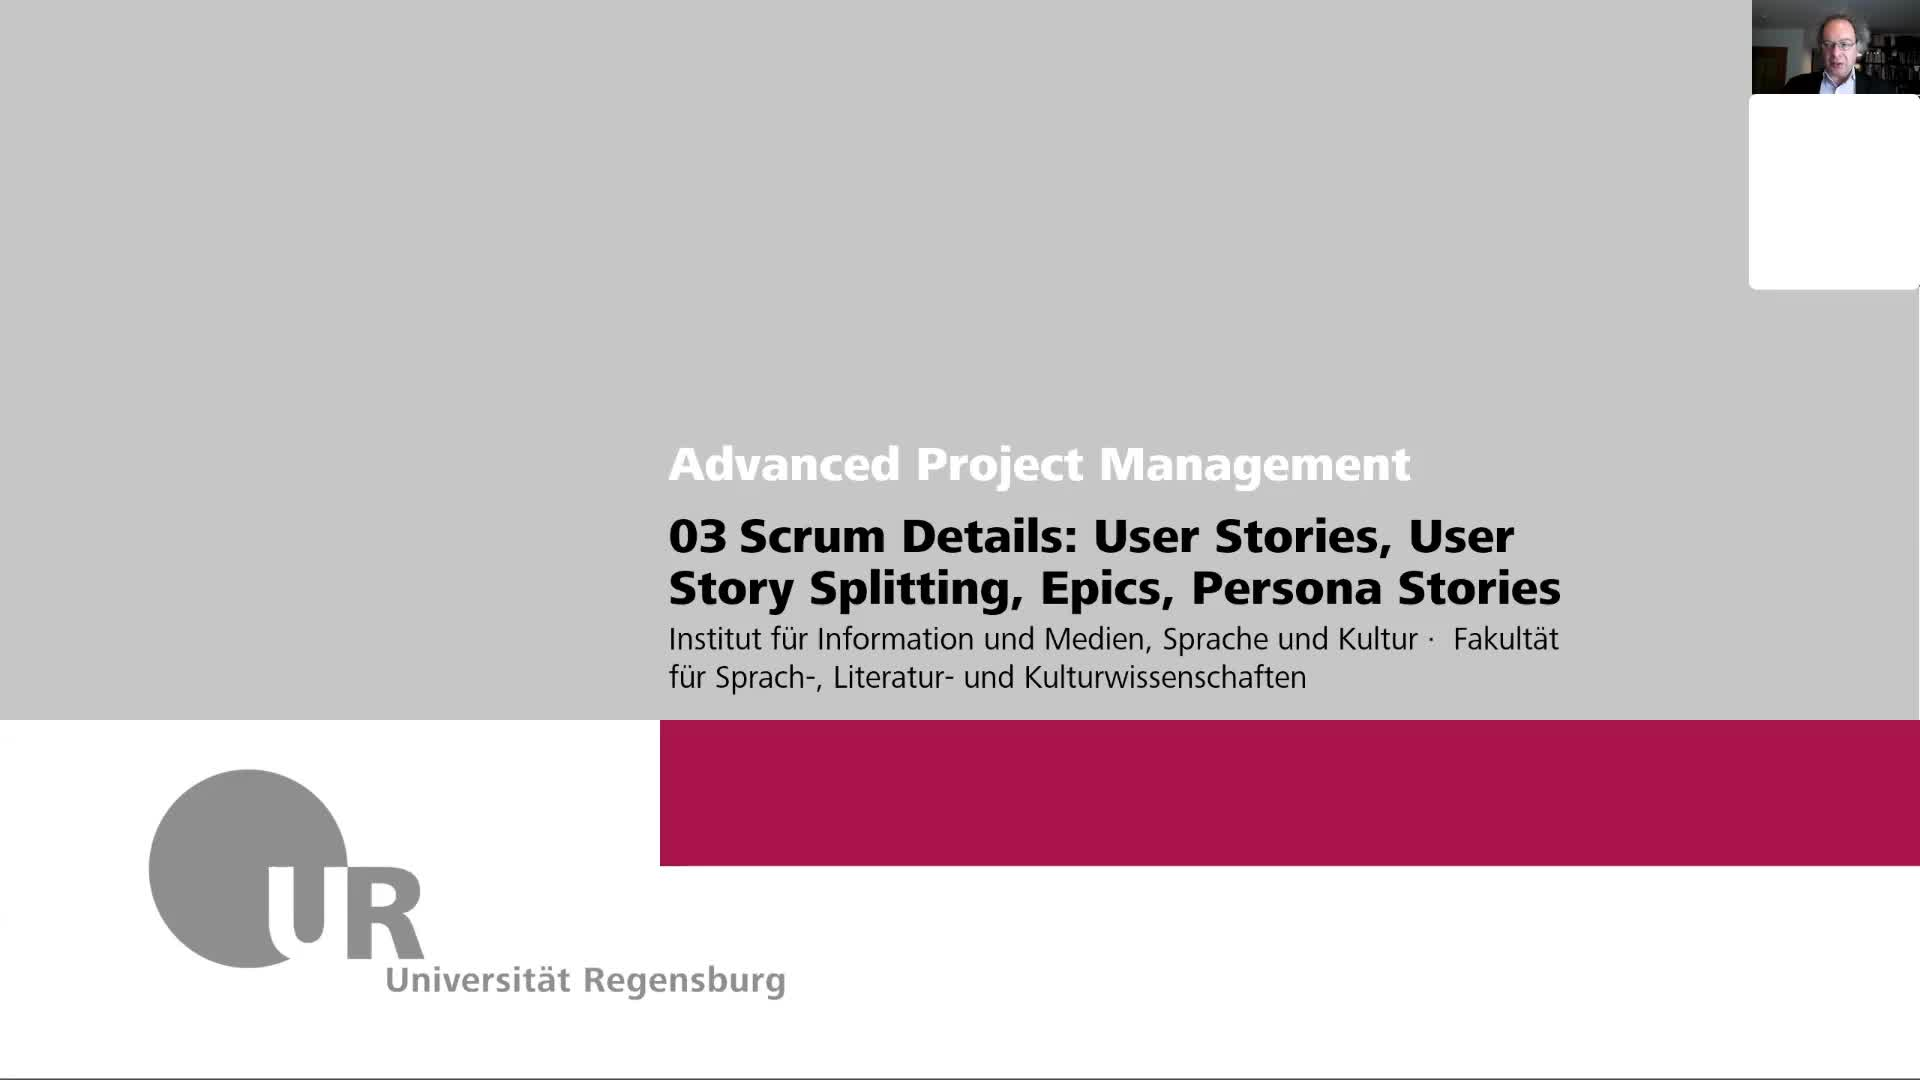 Advanced IT Project Management WS 2021: 03 Scrum Details: User Stories, User Story Splitting, Epics, Persona Stories